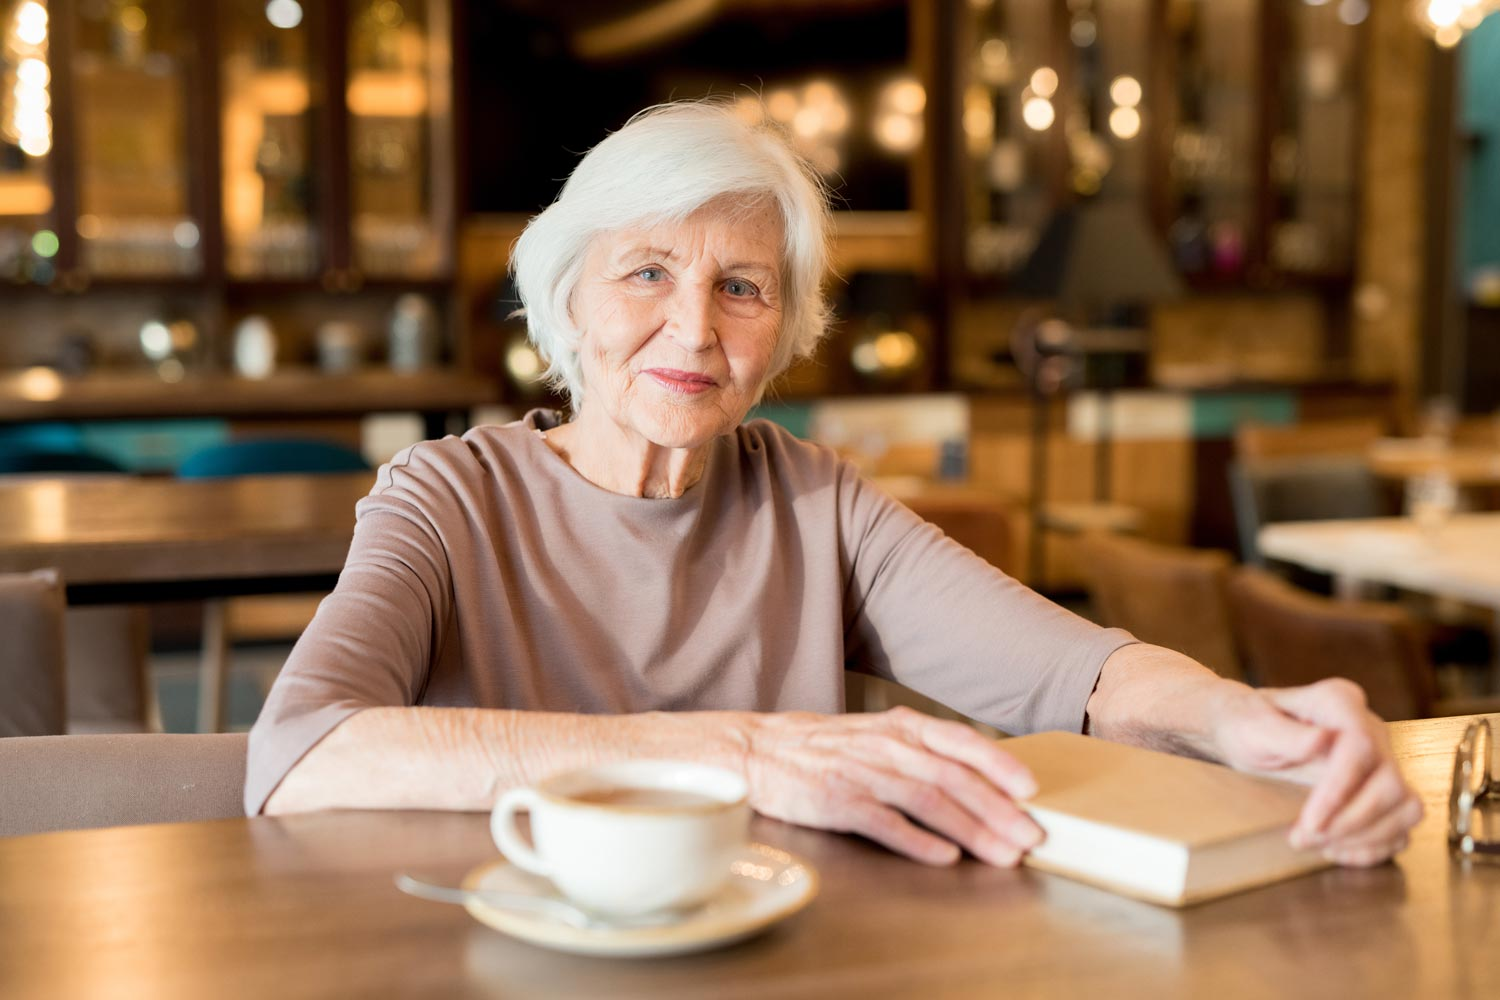 Senior Woman Smiling With Book And Coffee